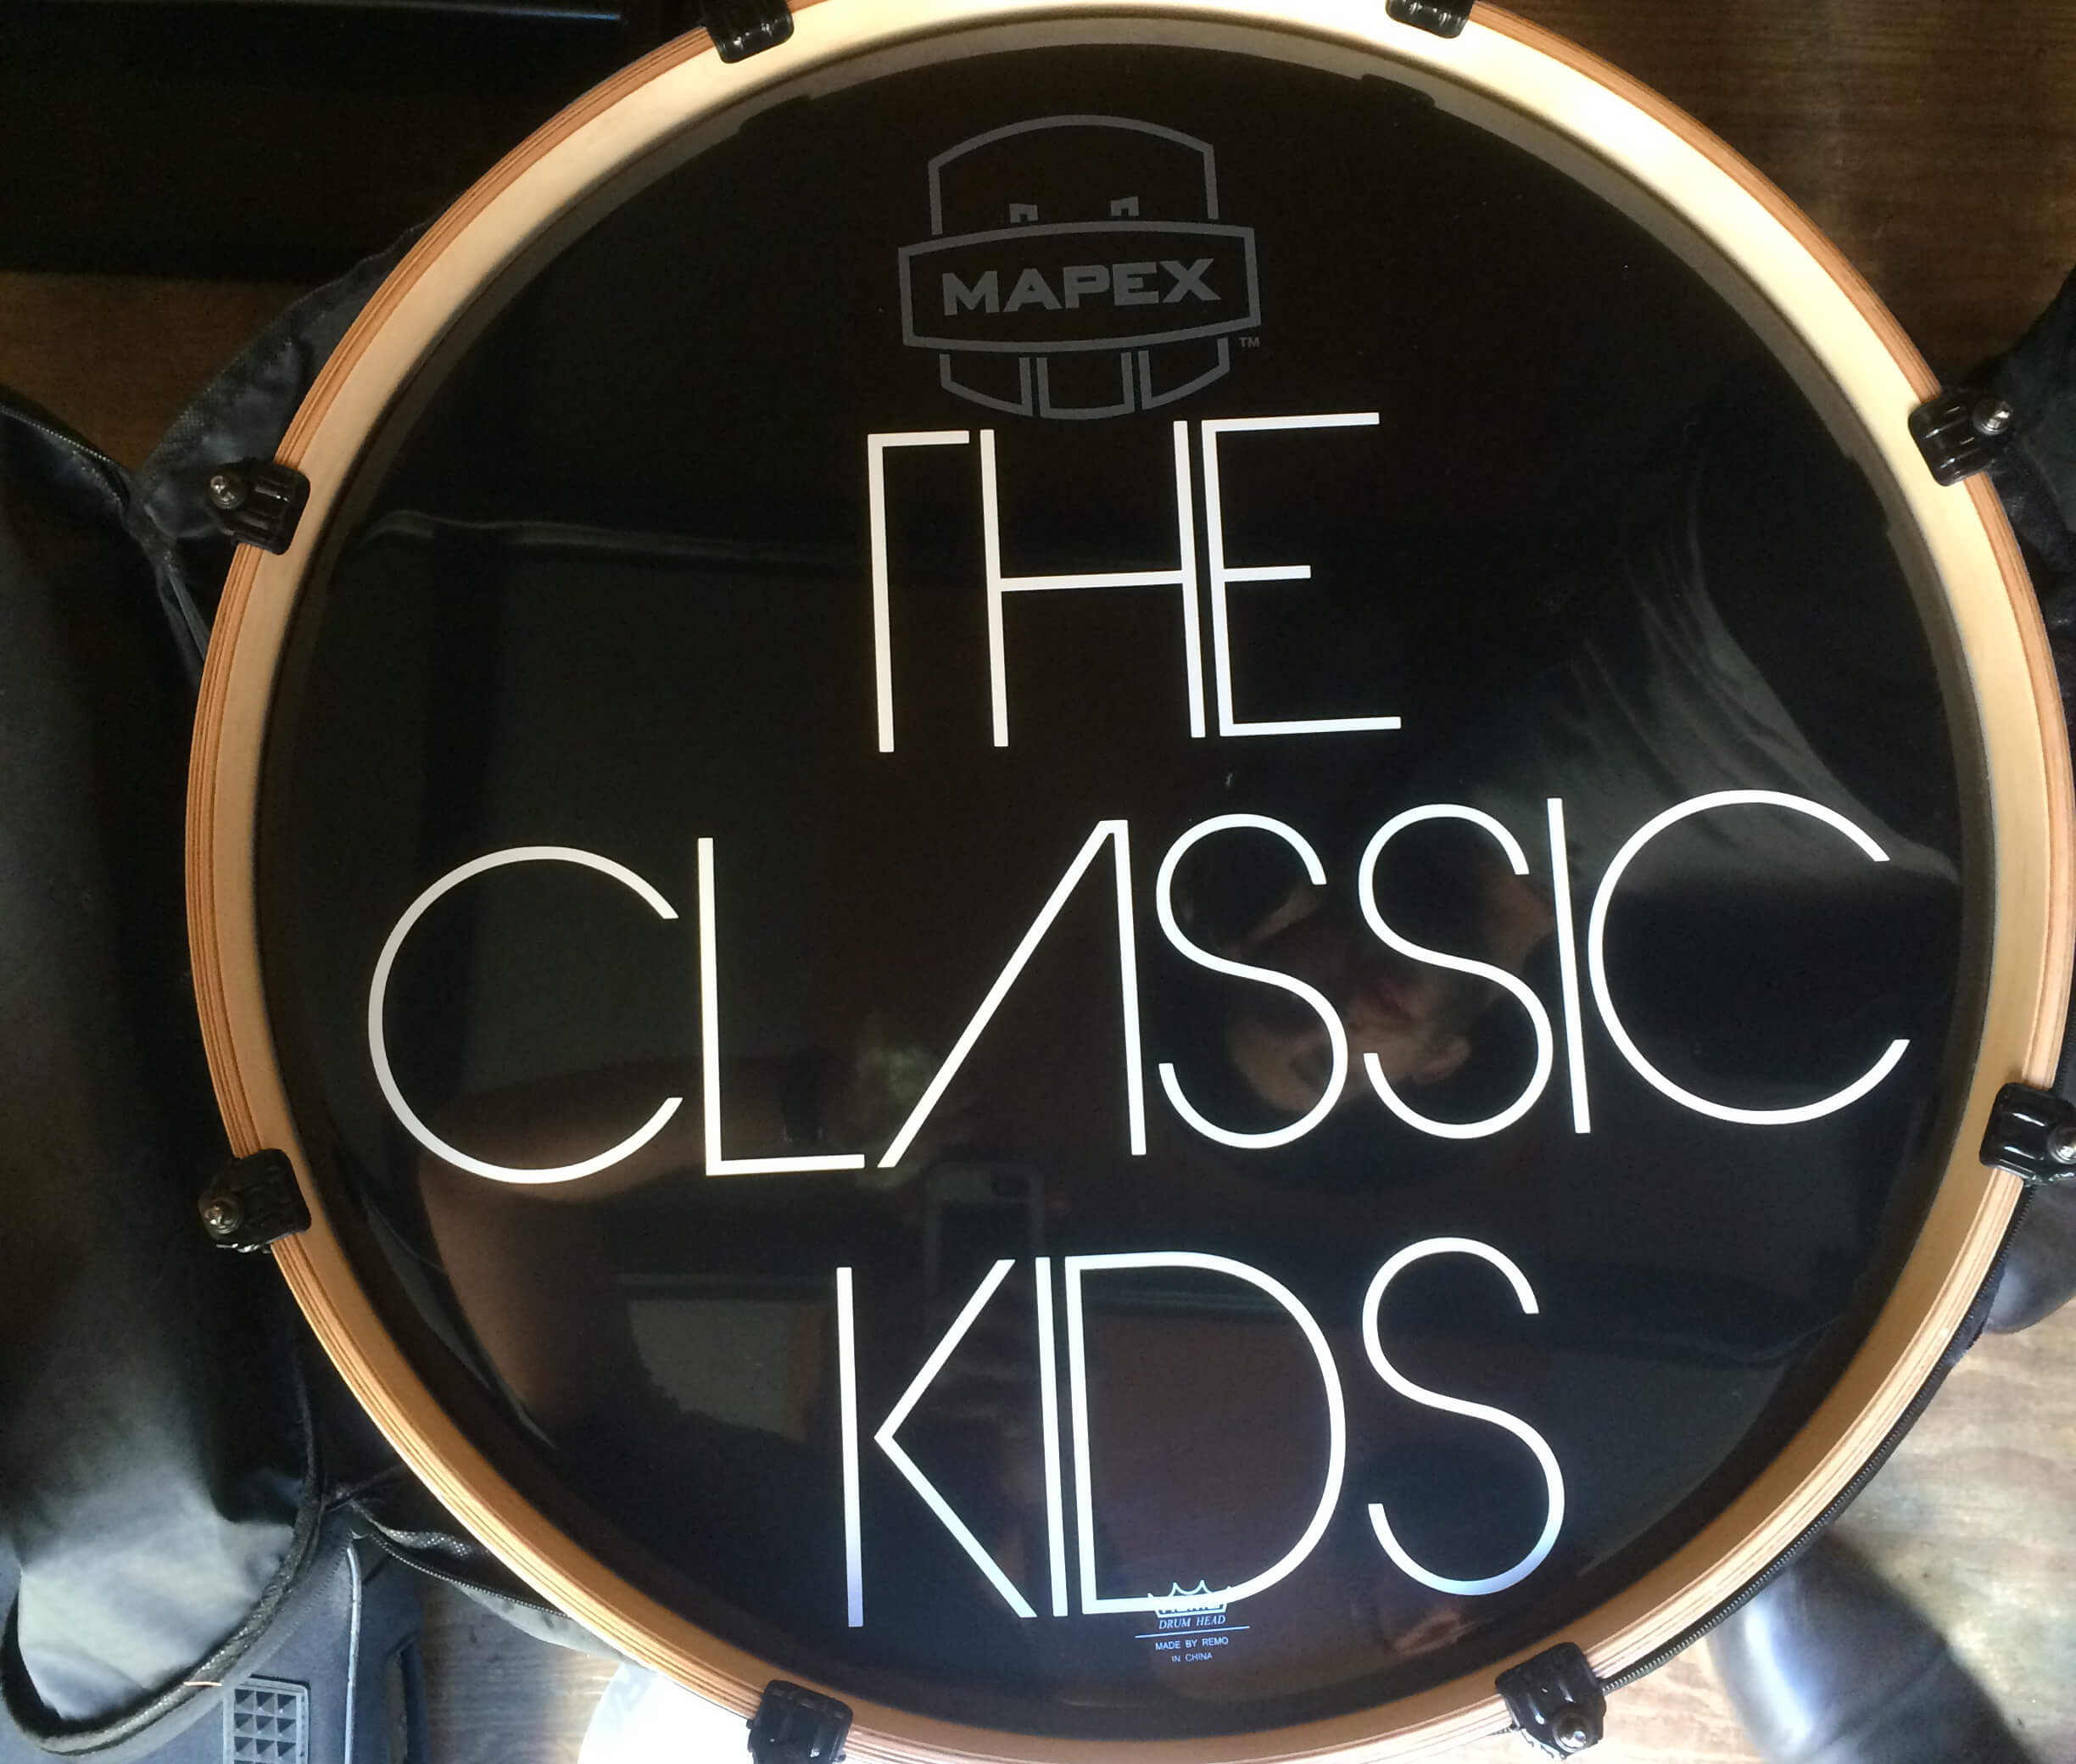 The Classic Kids, Bass drum decals, kick drum decals, drum stickers, sale, cheap price, die-cut, die cut vinyl decals, music bands, local band